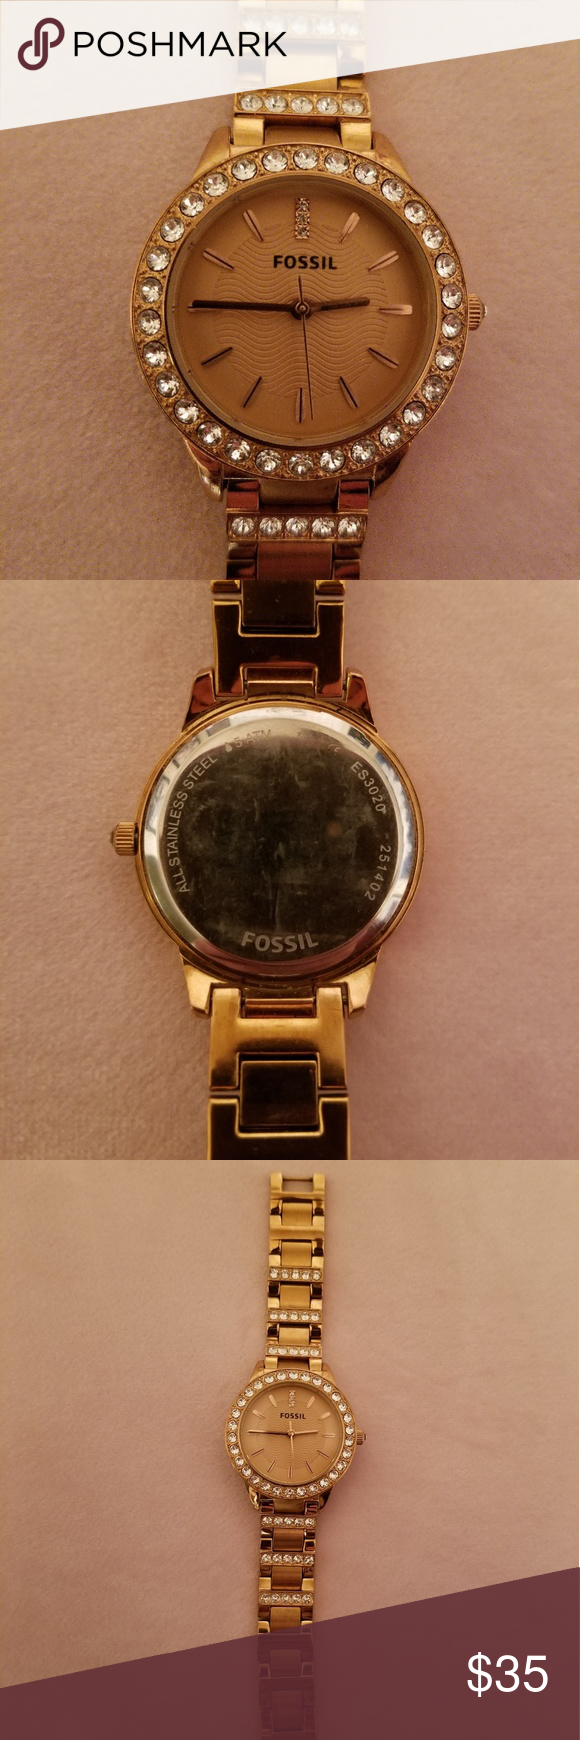 Fossil Rose Tone Watch Needs Battery Replacement Fossil Accessories Fossil Watch Fossil